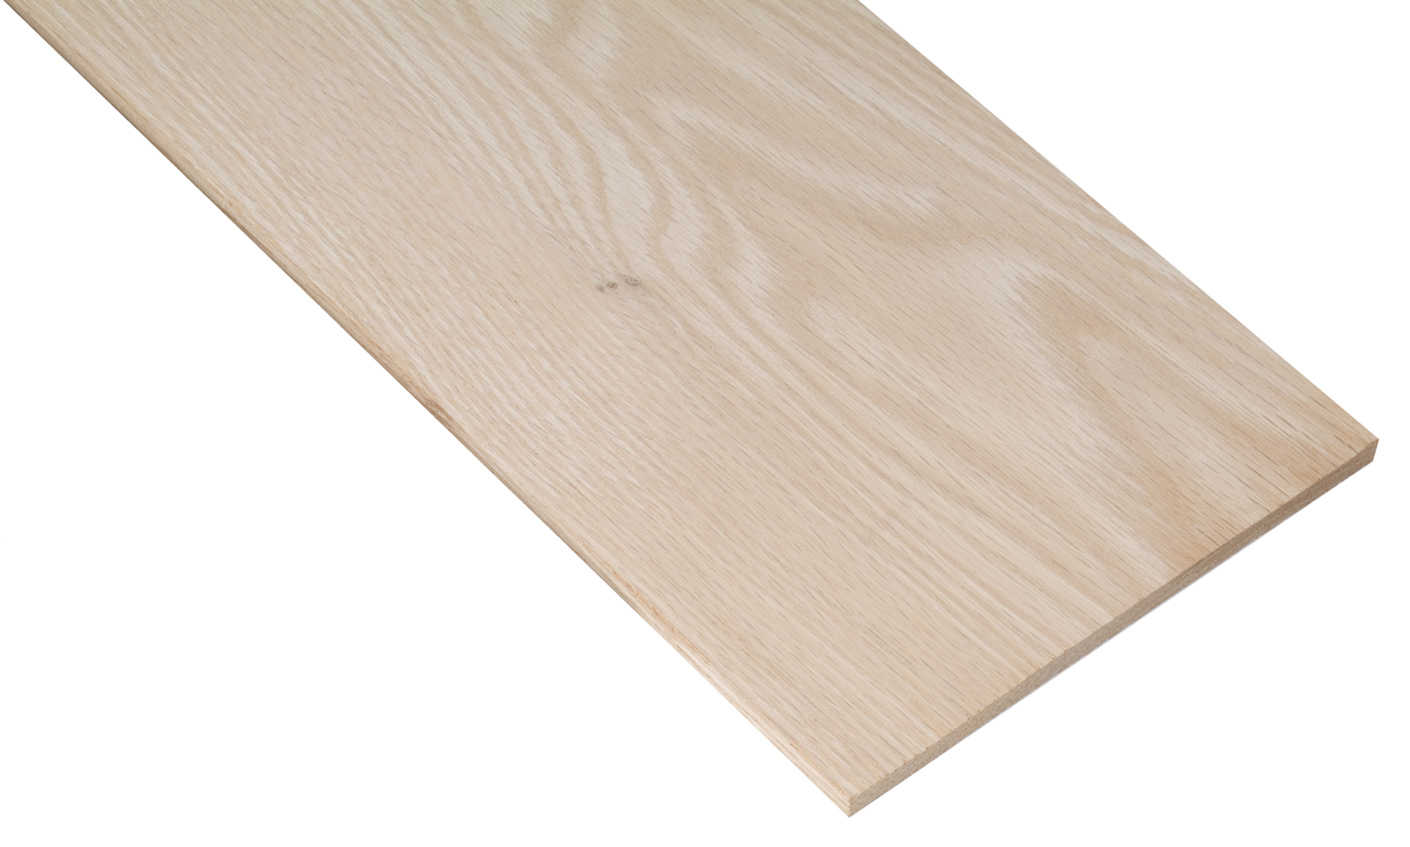 Waddell PB19505 1/4' x 2-1/2' x 48' Oak Project Board